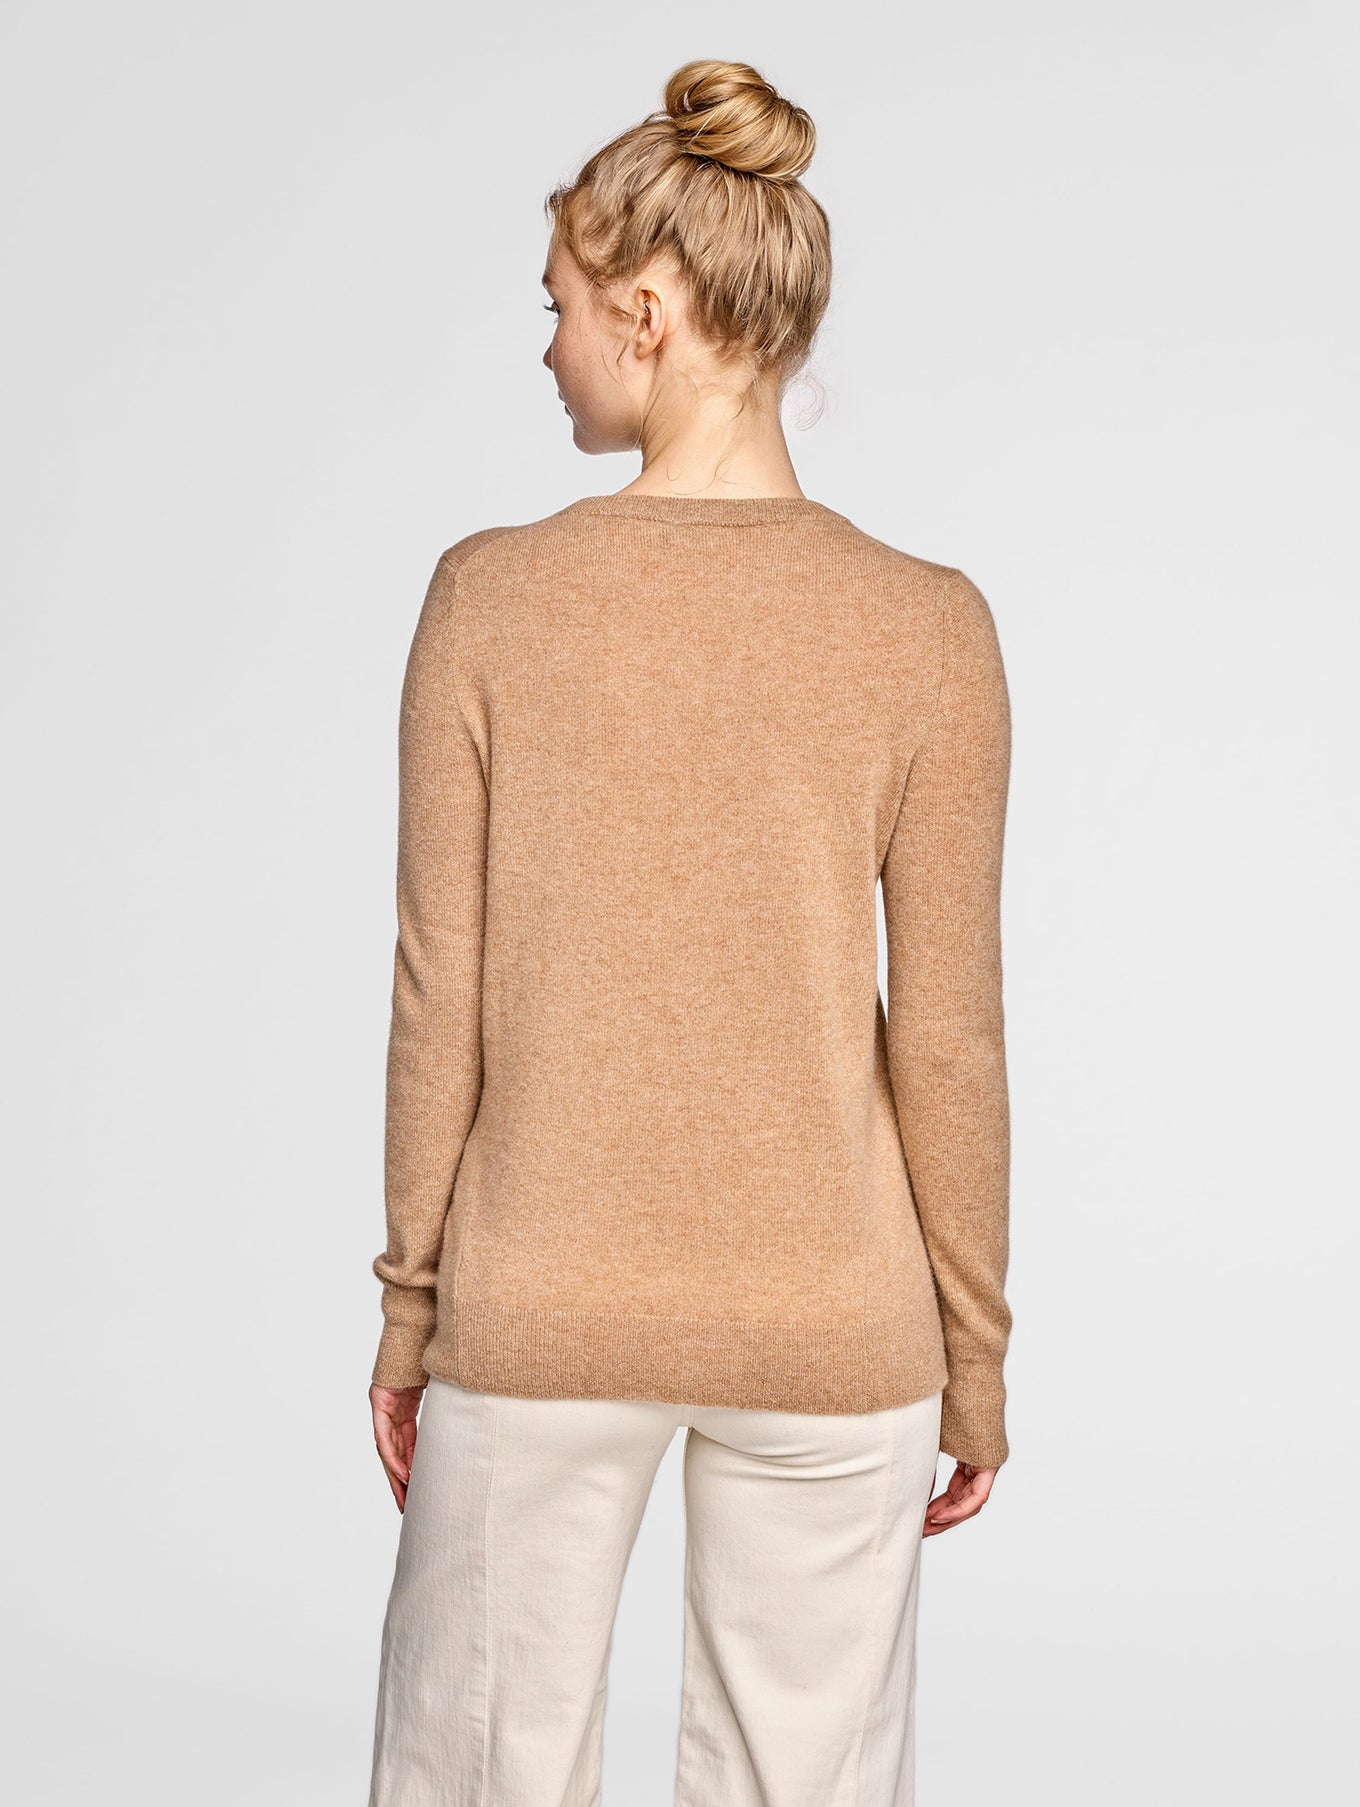 Essential Cashmere Crewneck - Camel Heather - Image 3